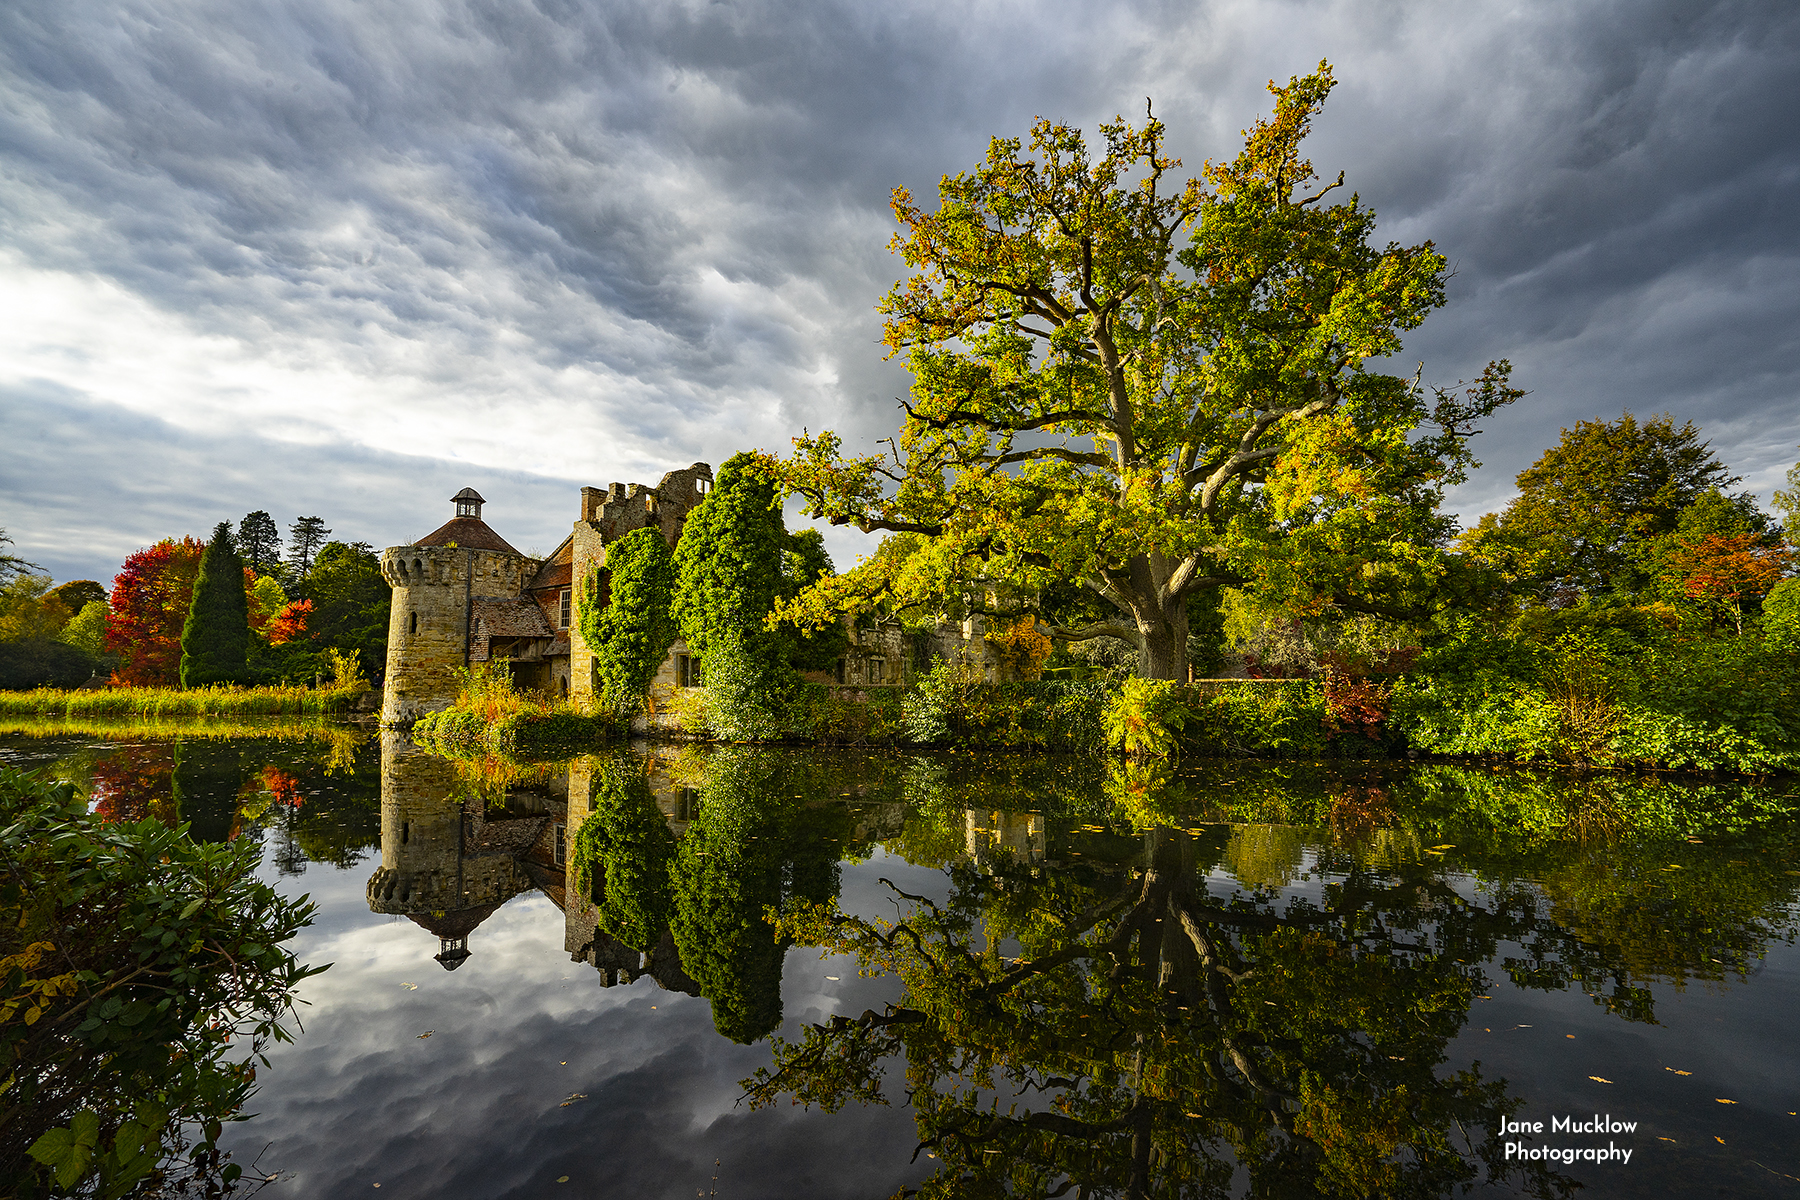 Photo of Autumn stormy reflections at Scotney Castle Kent by Jane Mucklow